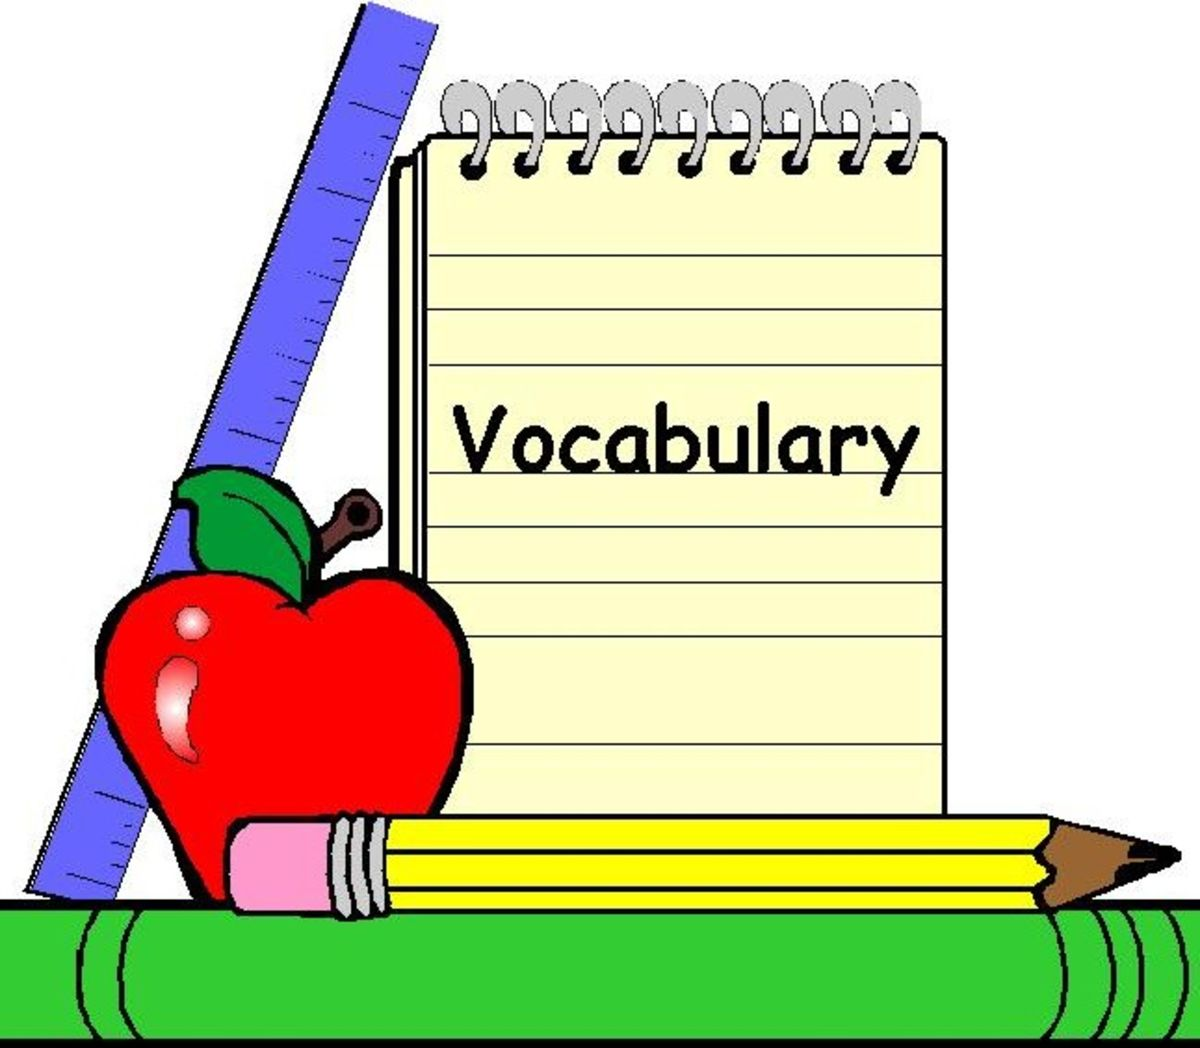 Dictionary Clipart Academic Vocabulary Dictionary